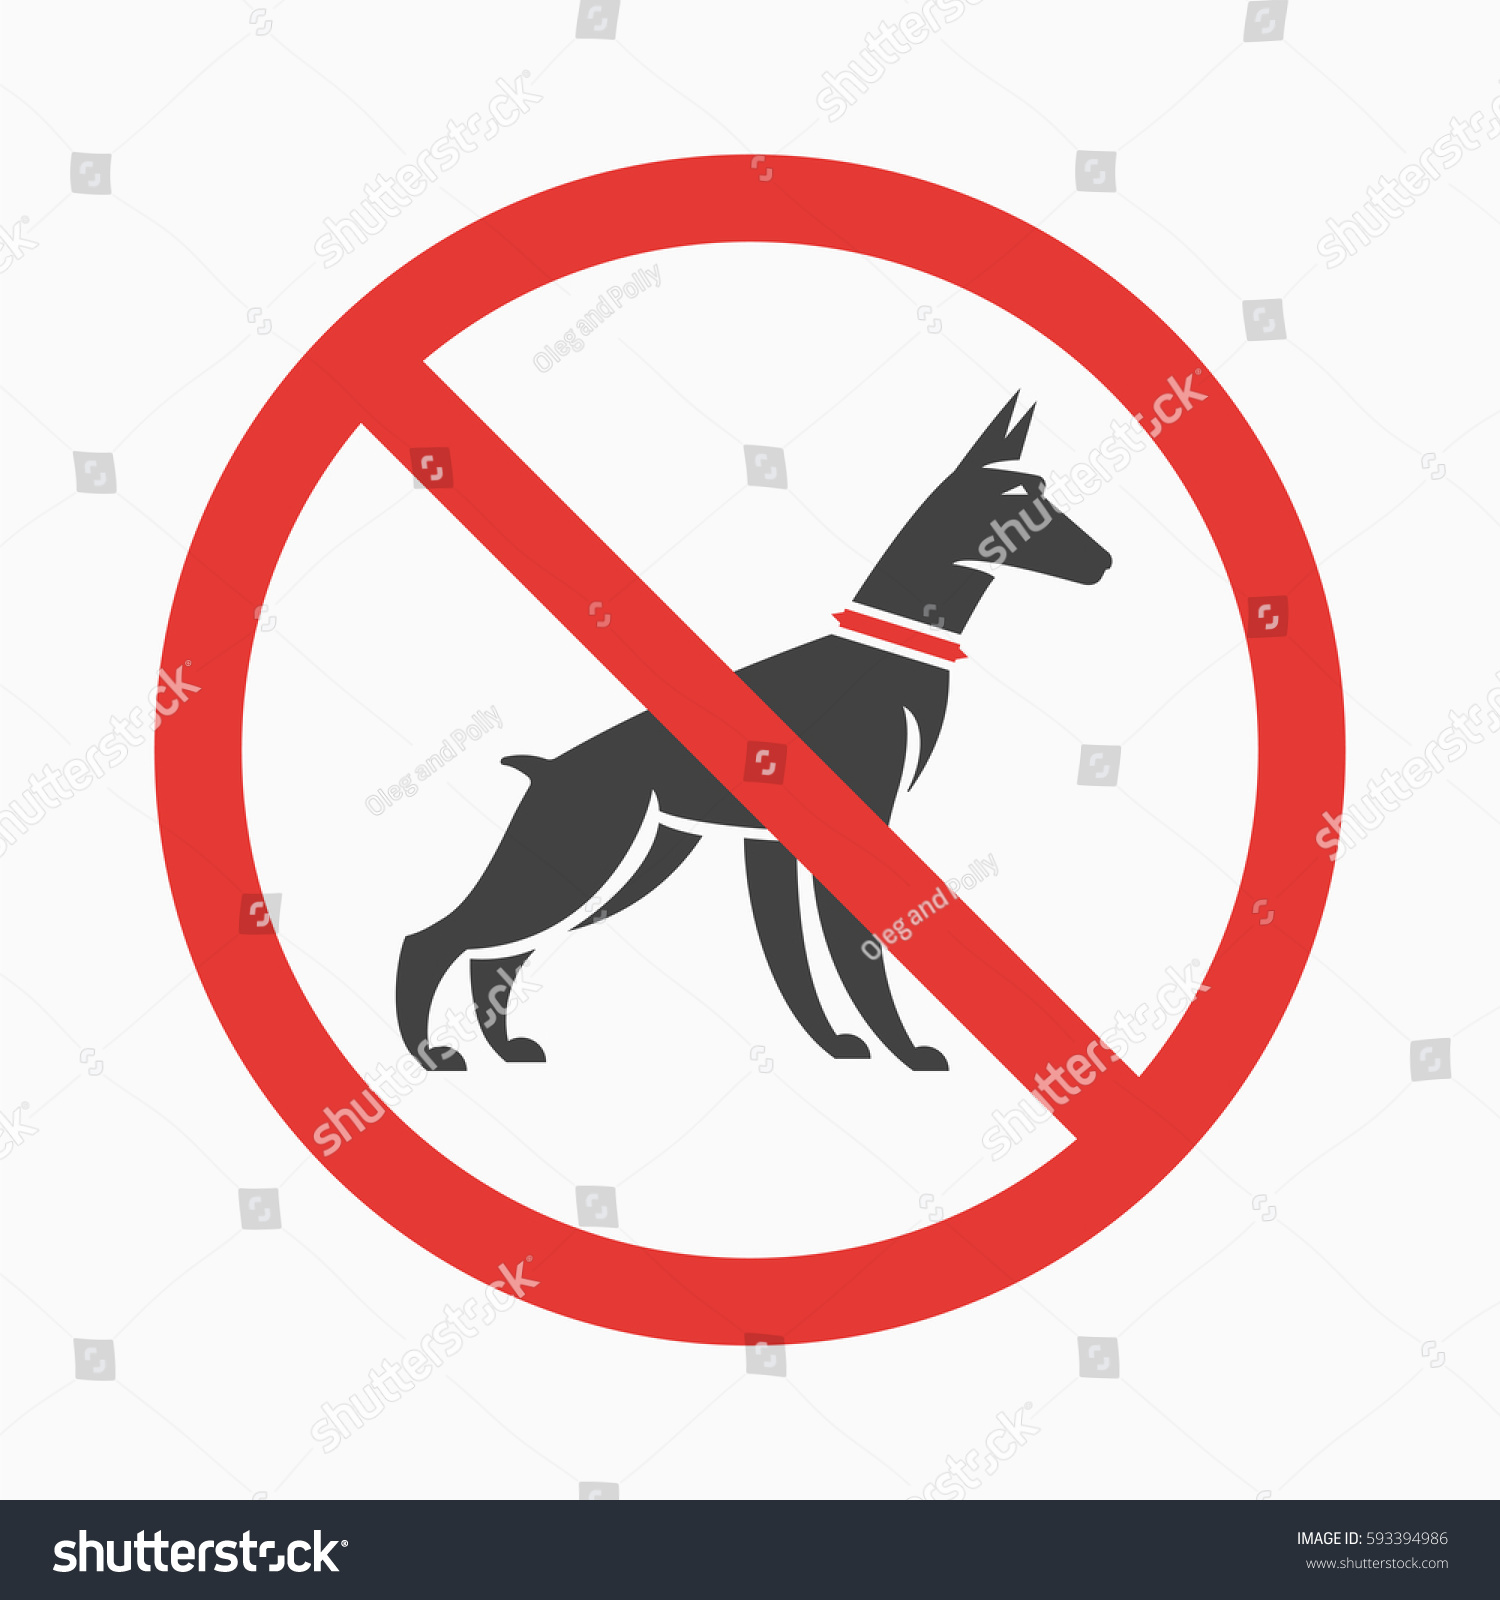 logo or information plate design for no pee no dog walking plates with doberman silhouette